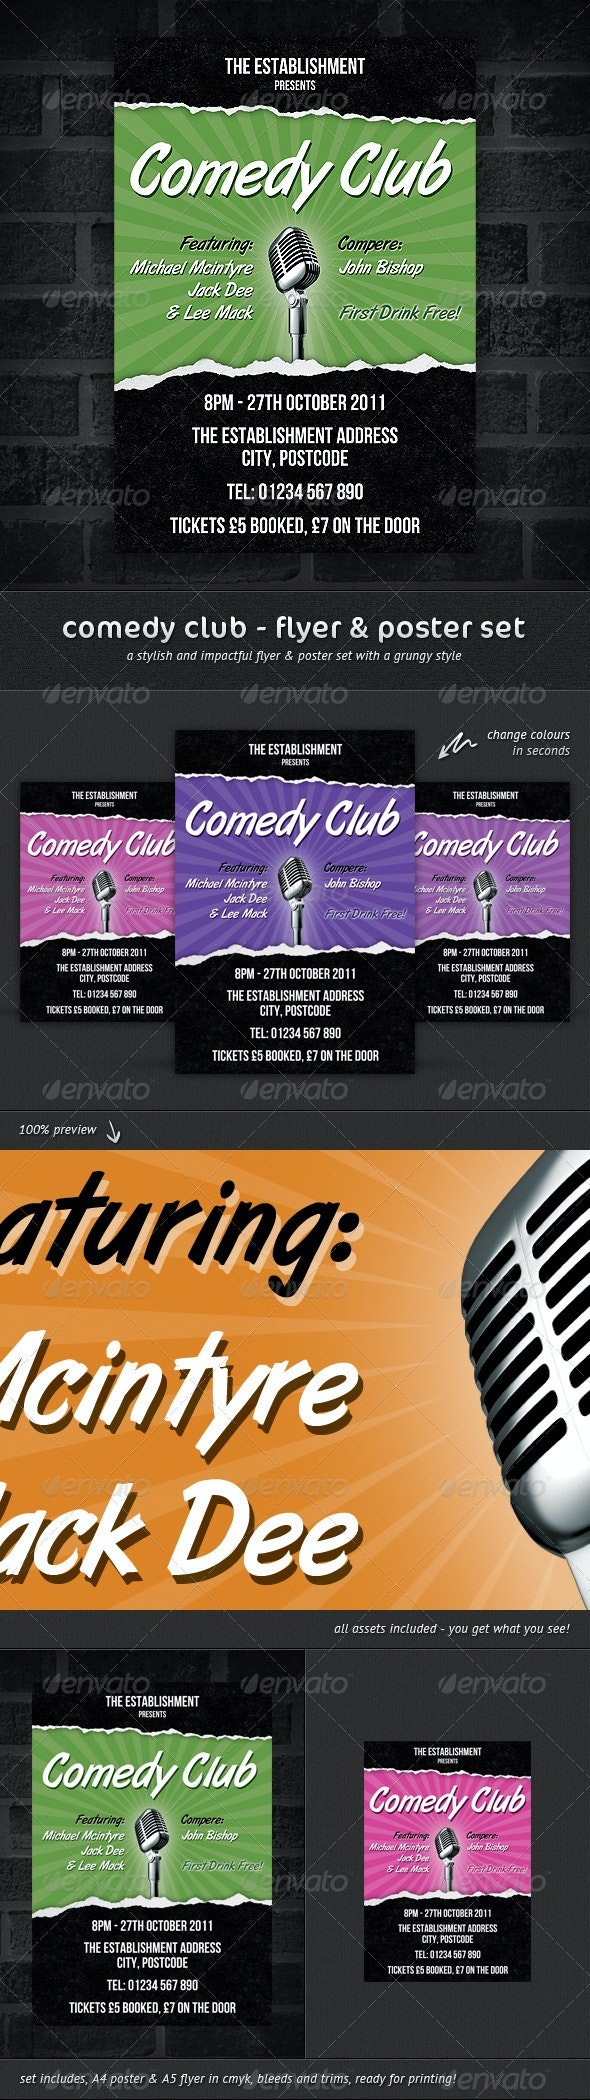 Comedy Club - Flyer & Poster Set - Miscellaneous Events